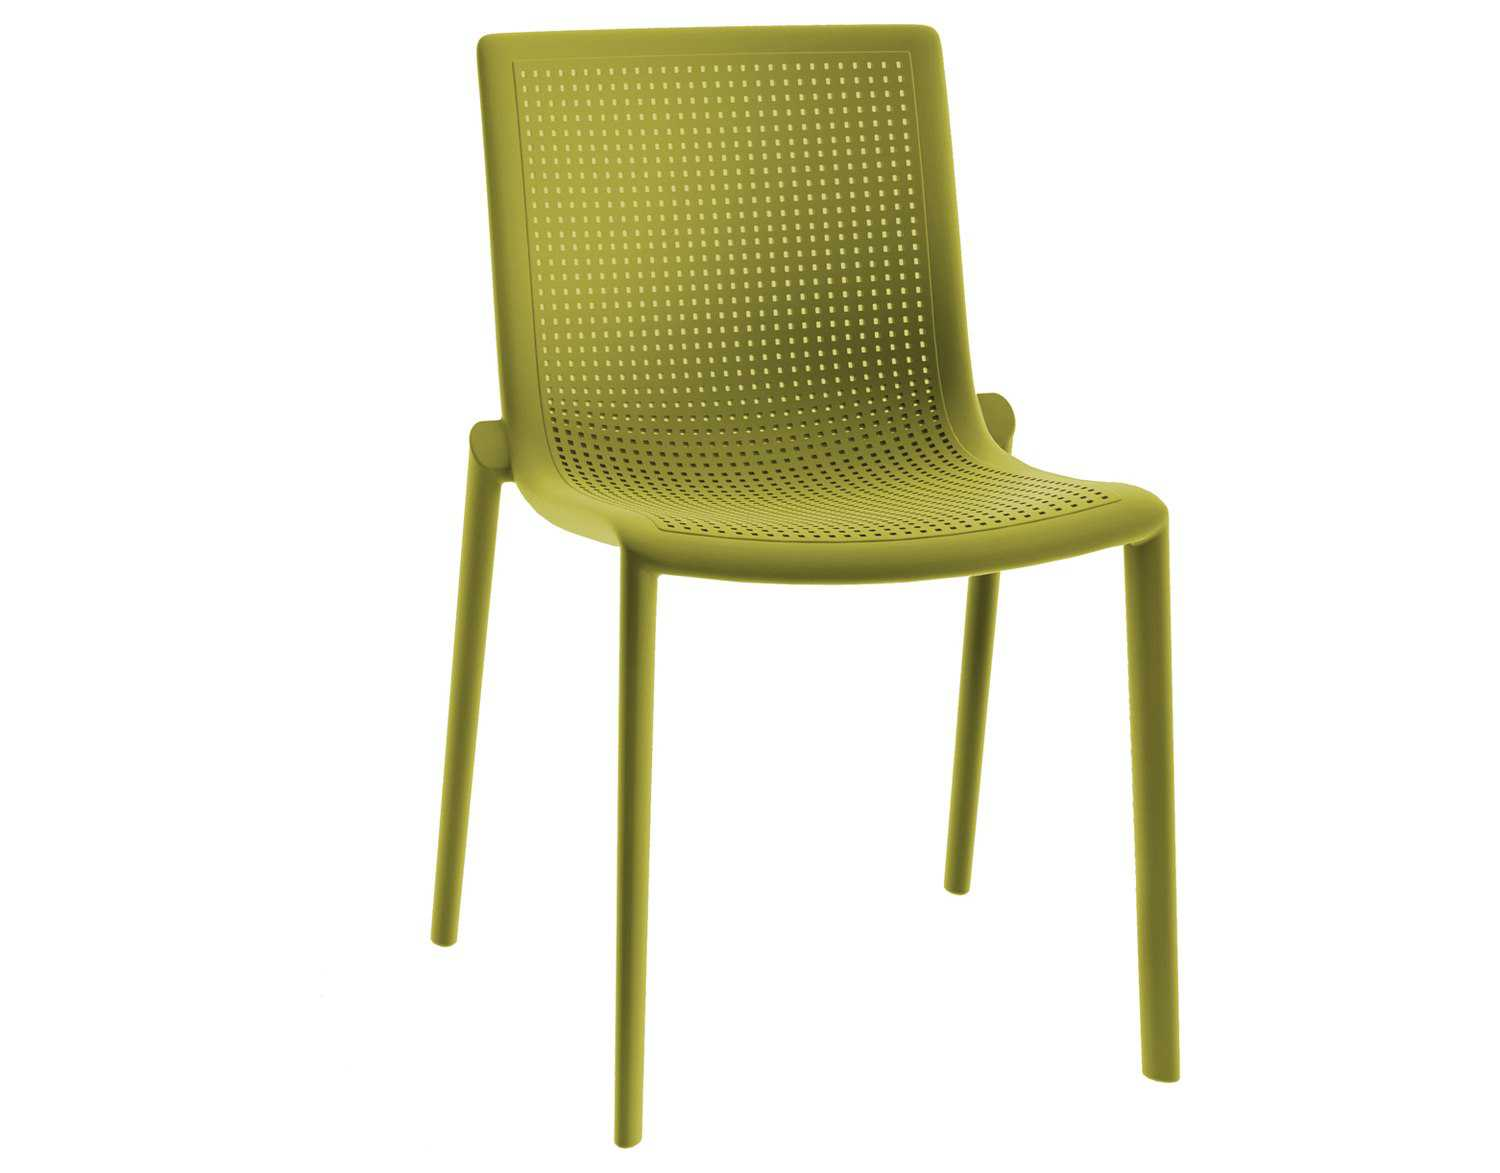 resol beekat recycled plastic green olive side chair rs30543. Black Bedroom Furniture Sets. Home Design Ideas